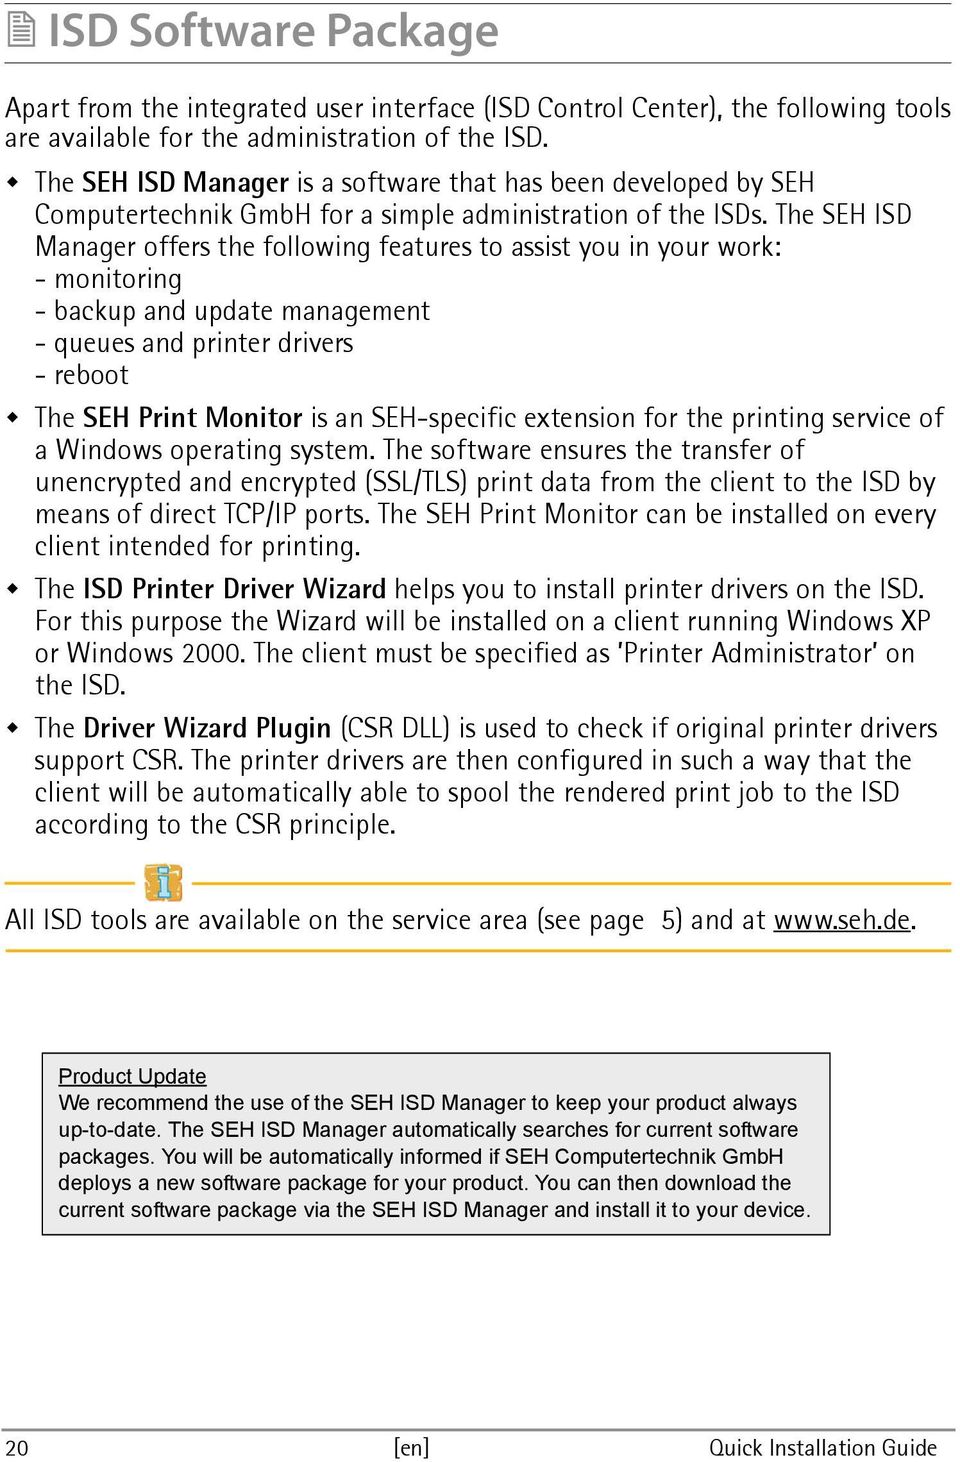 The SEH ISD Manager offers the following features to assist you in your work: - monitoring - backup and update management - queues and printer drivers - reboot The SEH Print Monitor is an